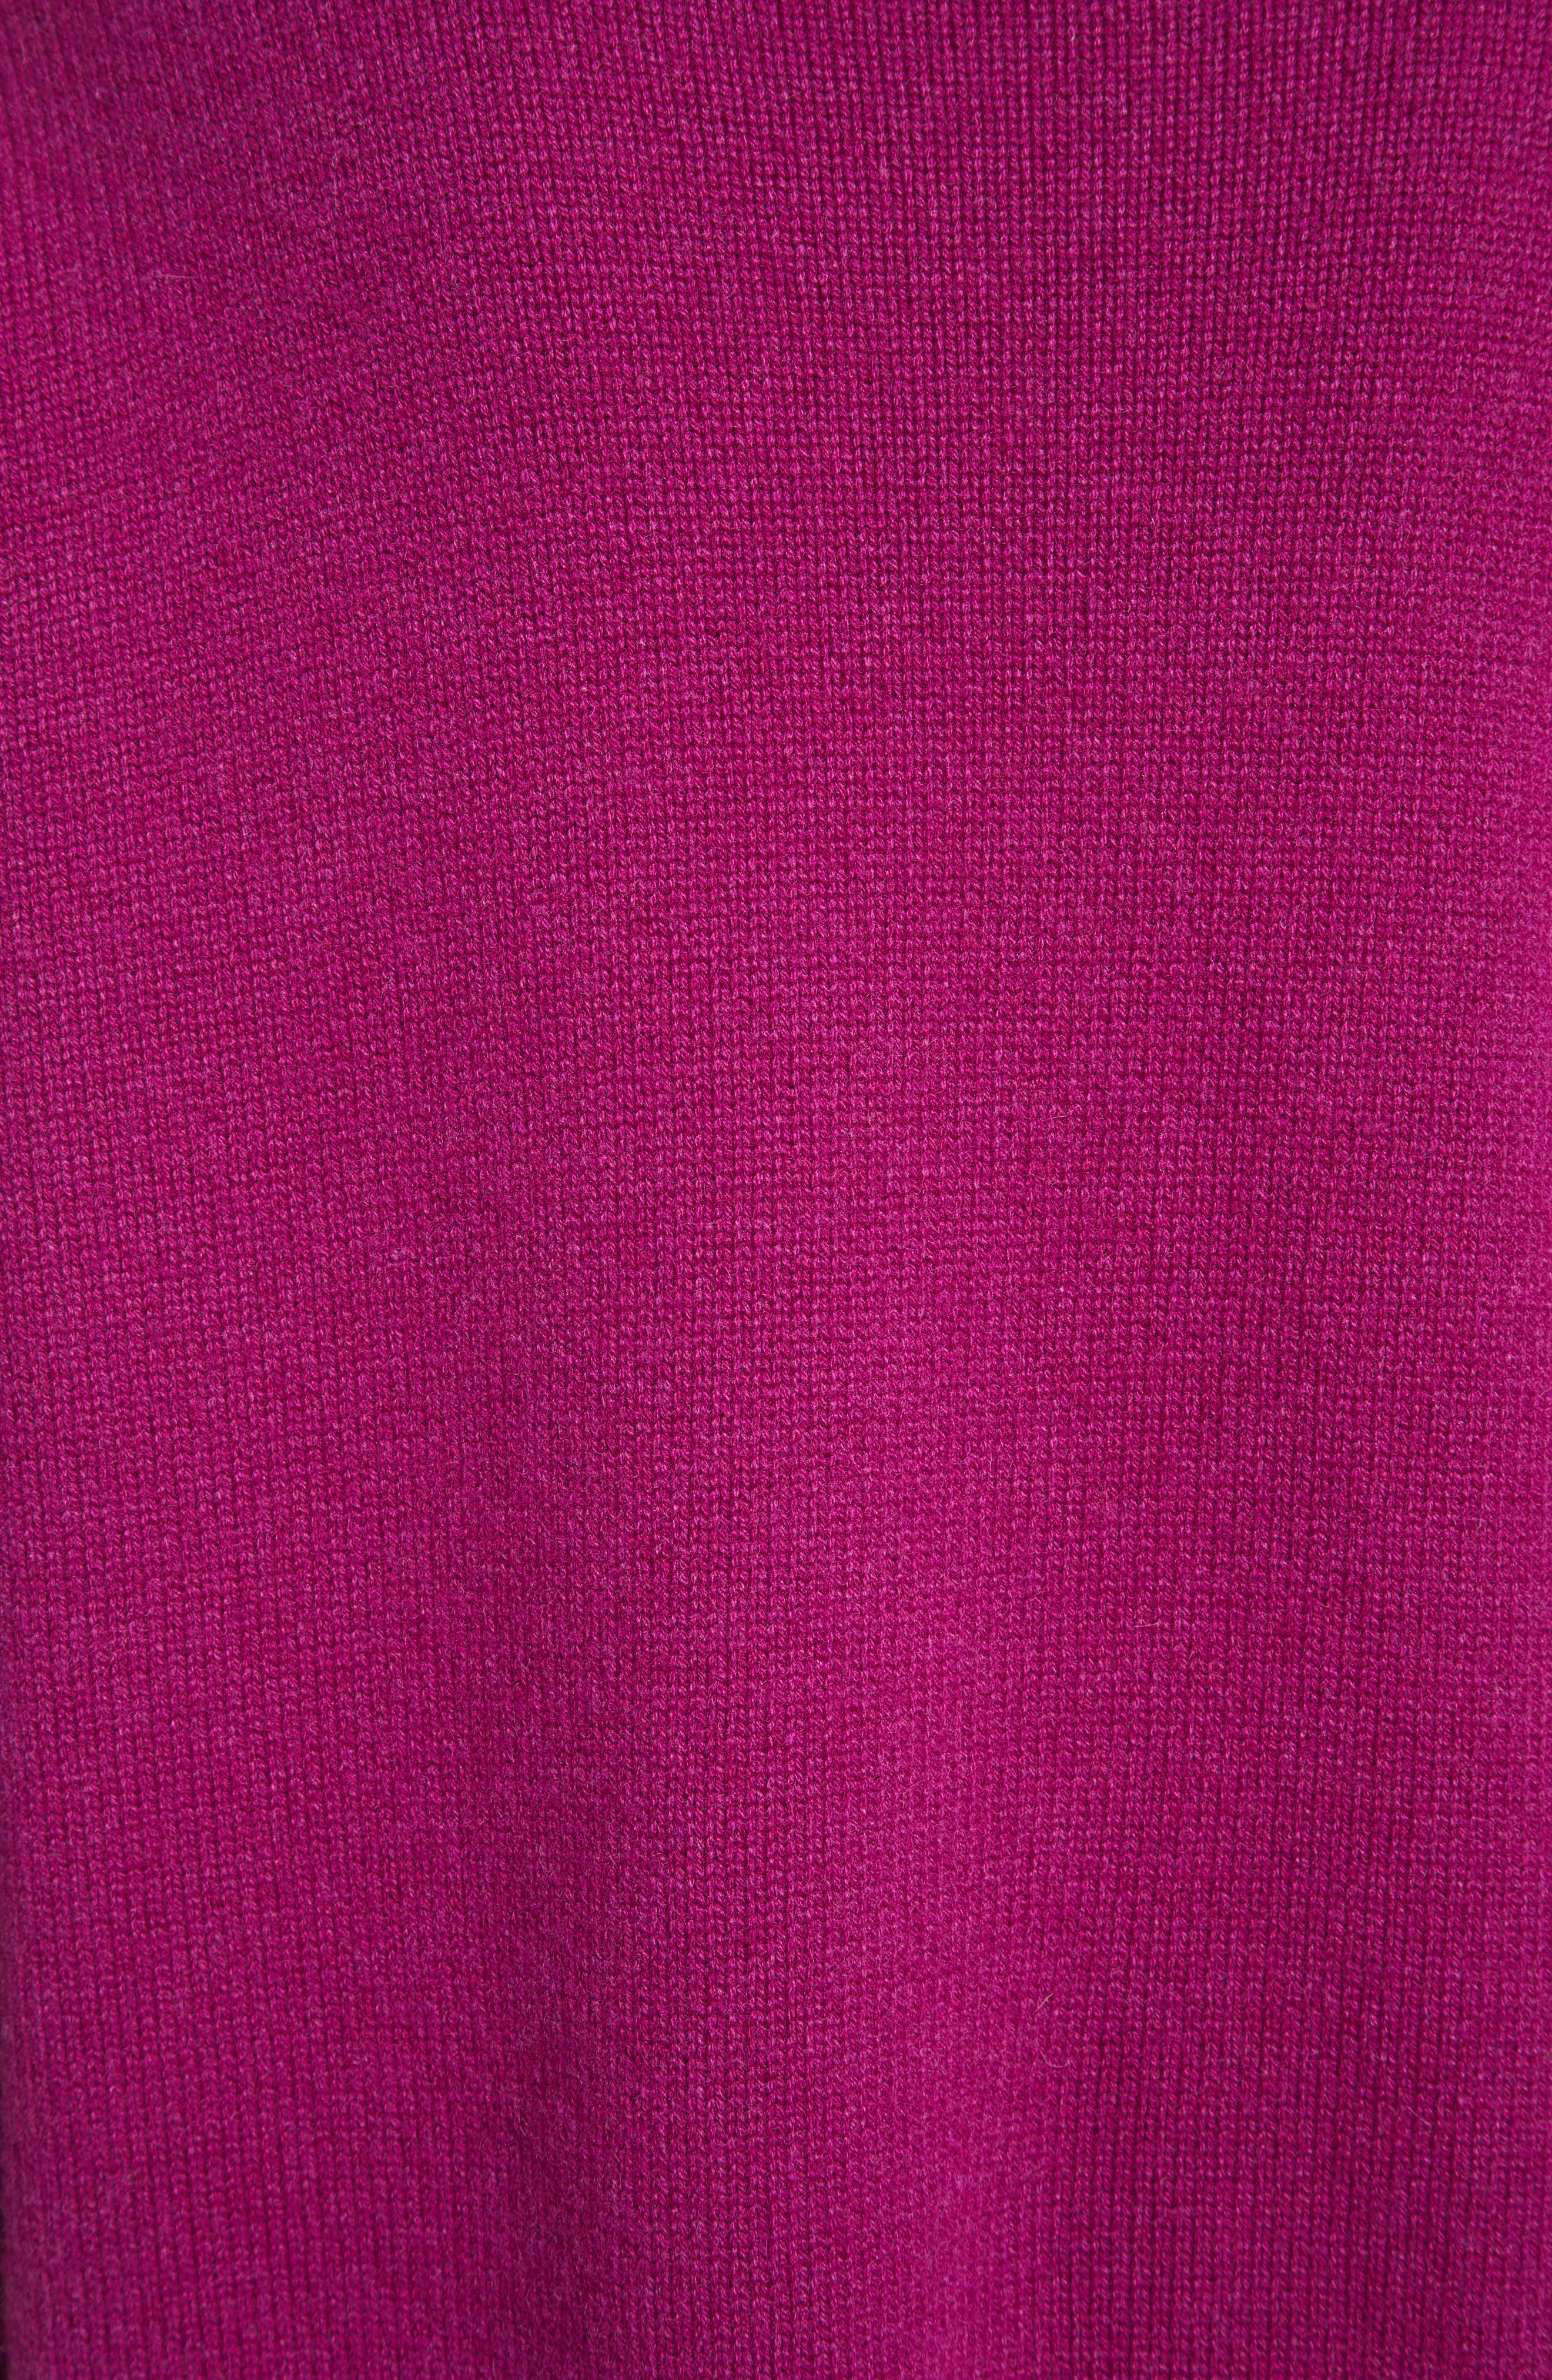 Karenia R Cashmere Sweater,                             Alternate thumbnail 5, color,                             Fuschia